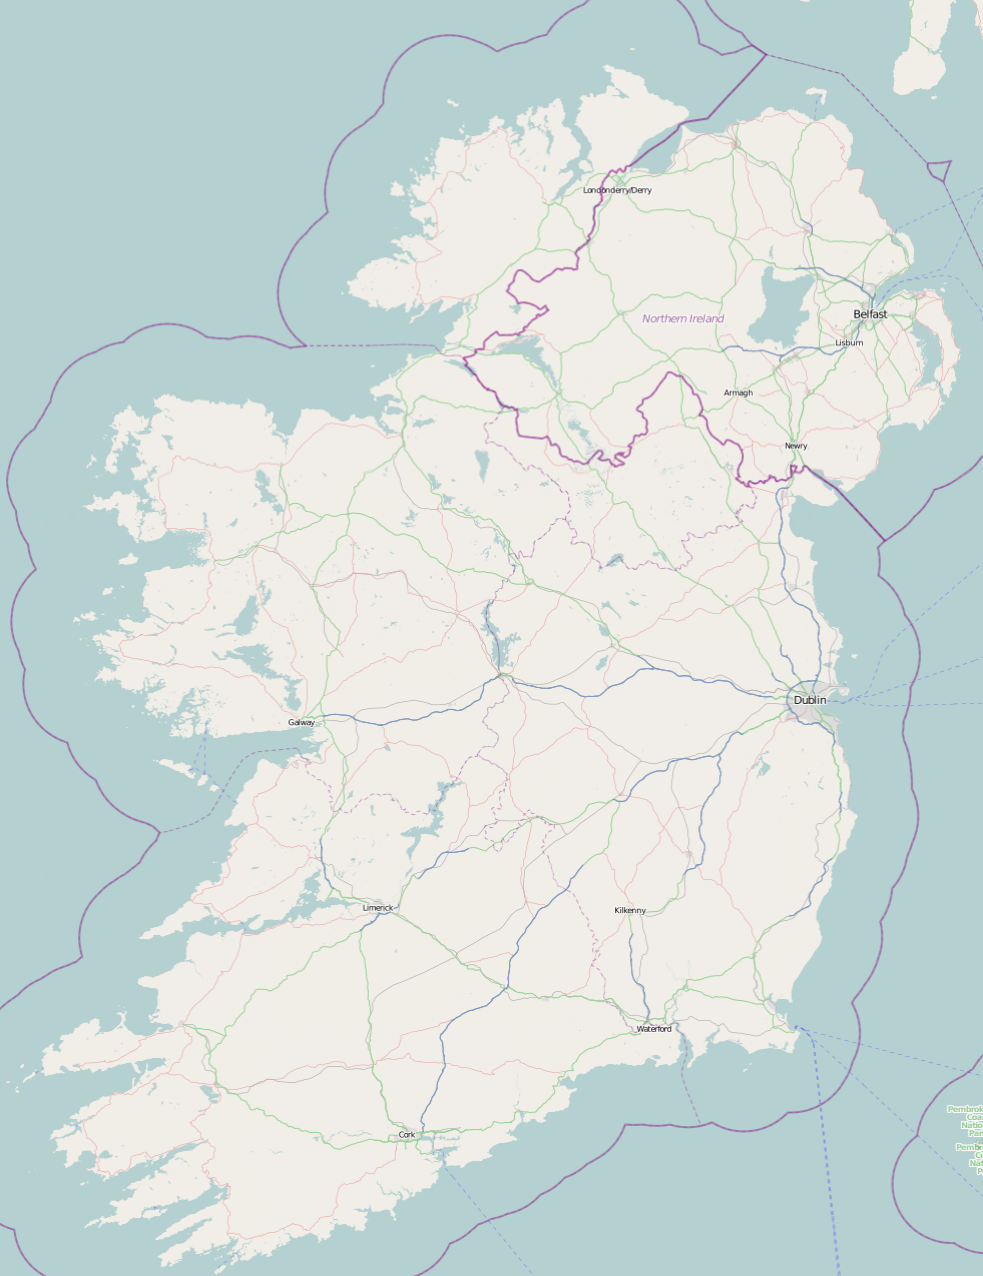 Road Map Of Ireland With Counties.Roads In Ireland Wikipedia